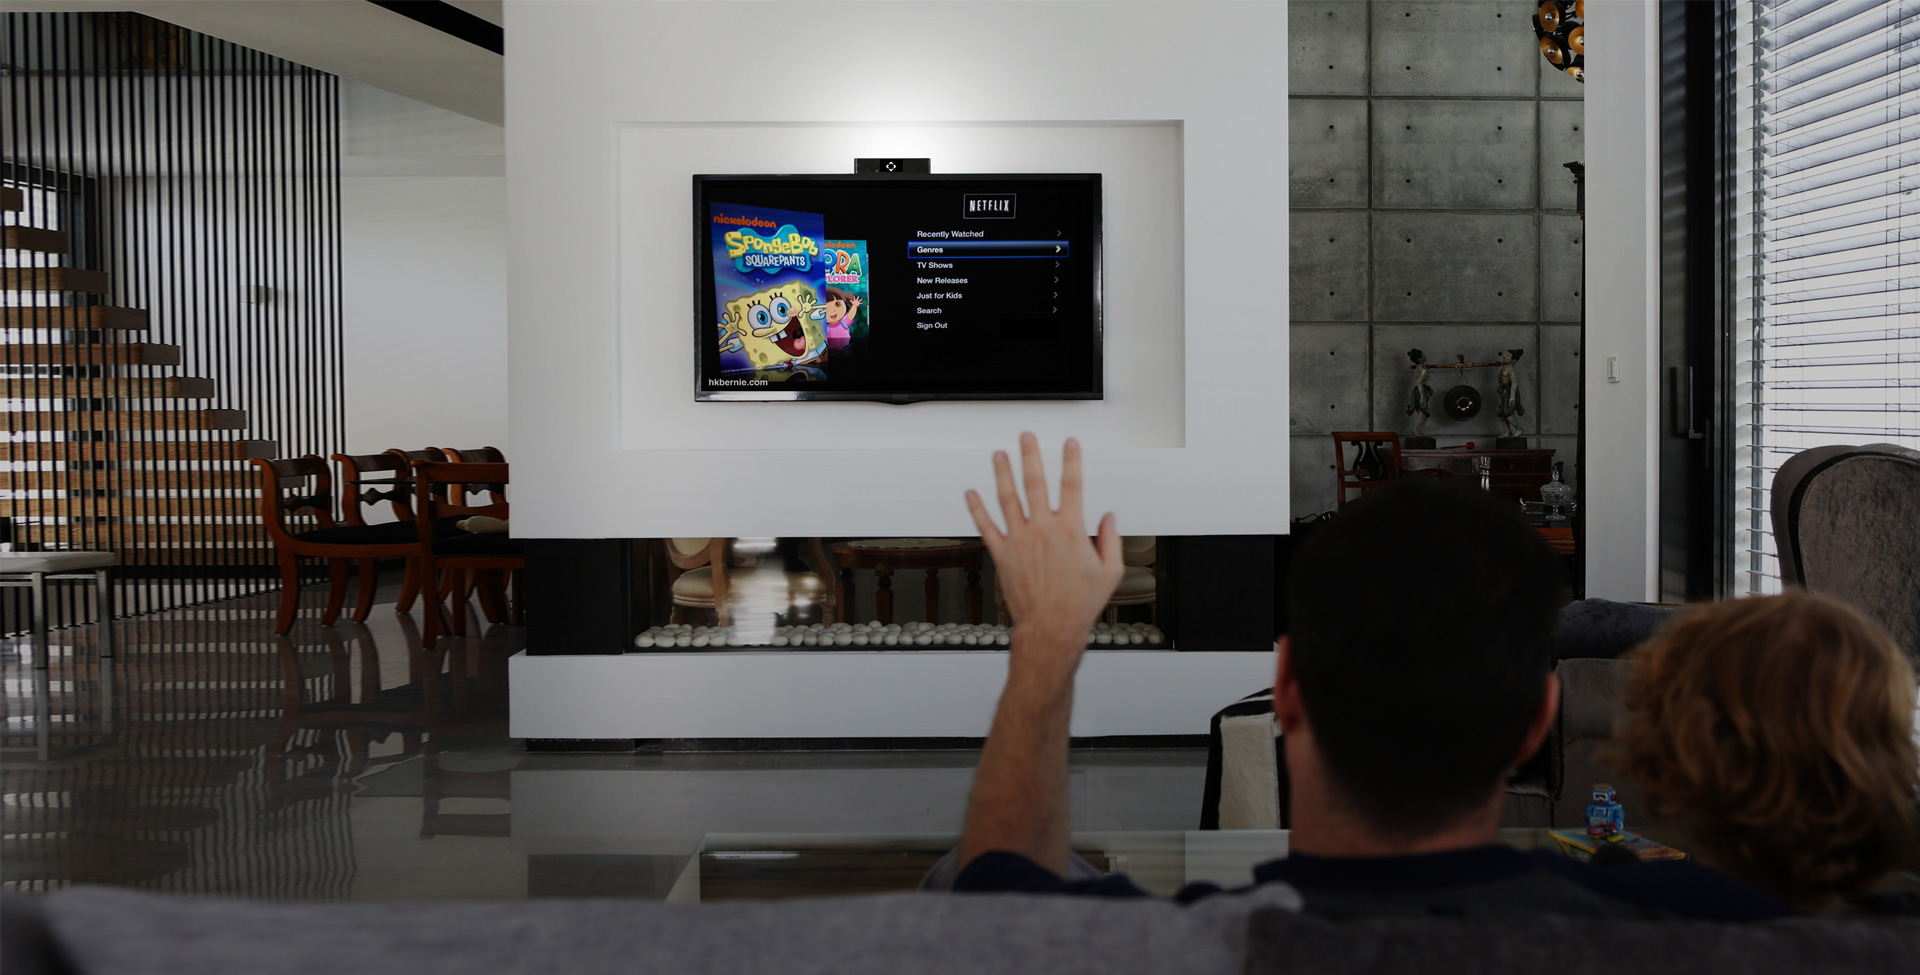 onecue adds motion gestures to your apple tv and lets you. Black Bedroom Furniture Sets. Home Design Ideas